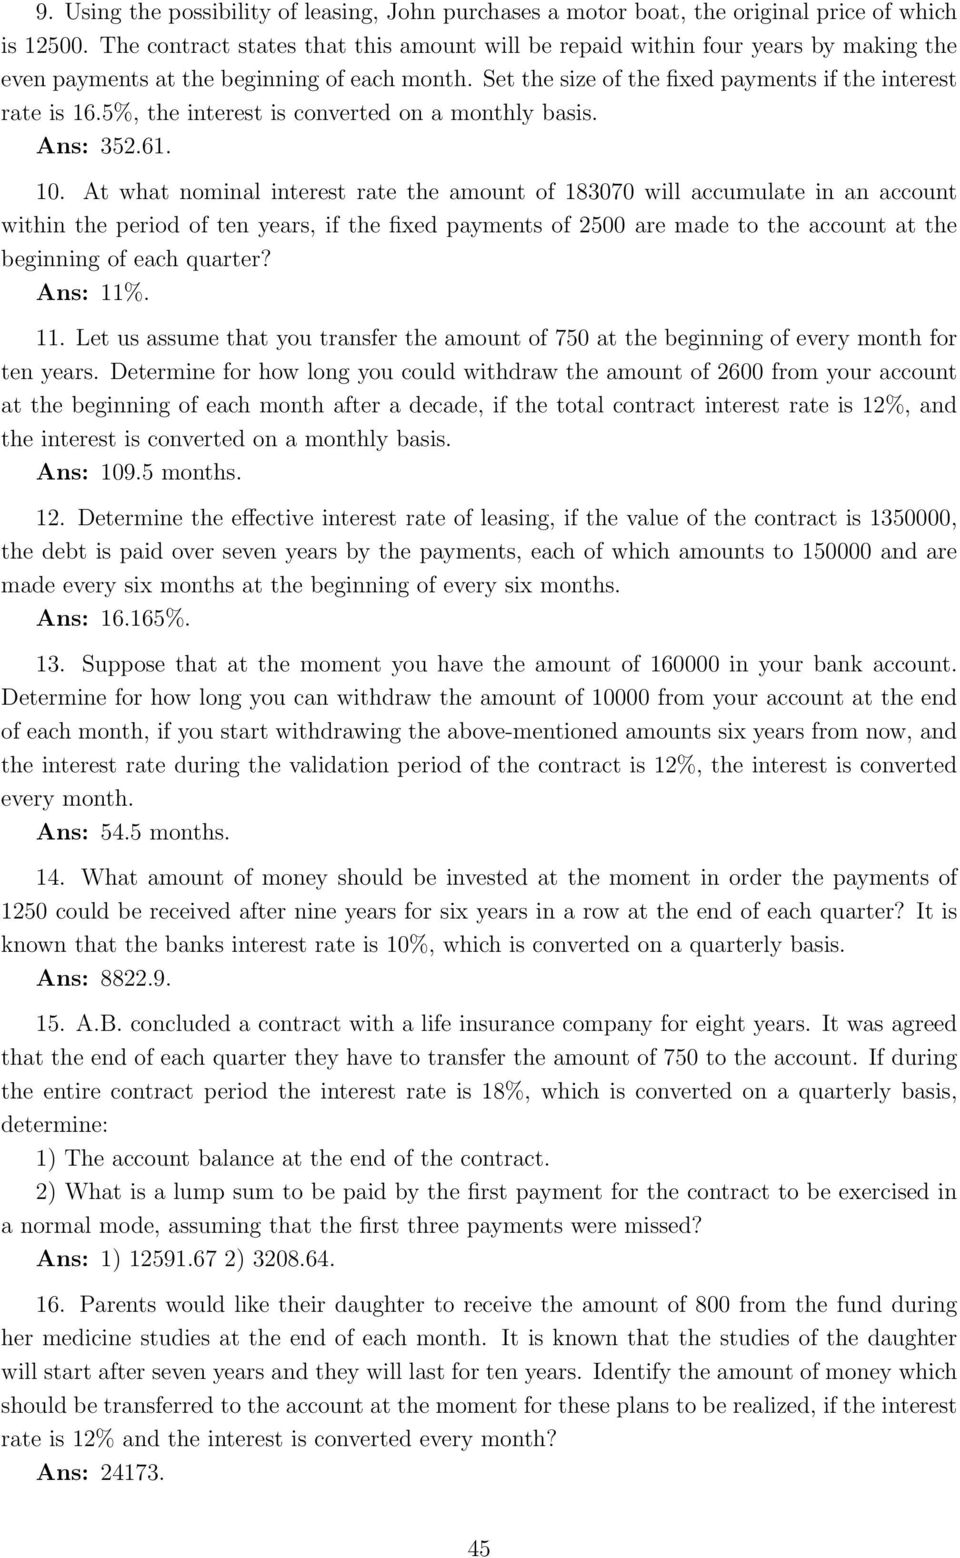 183070 will accumulate in an account within the period of ten years, if the fixed payments of 2500 are made to the account at the beginning of each quarter?